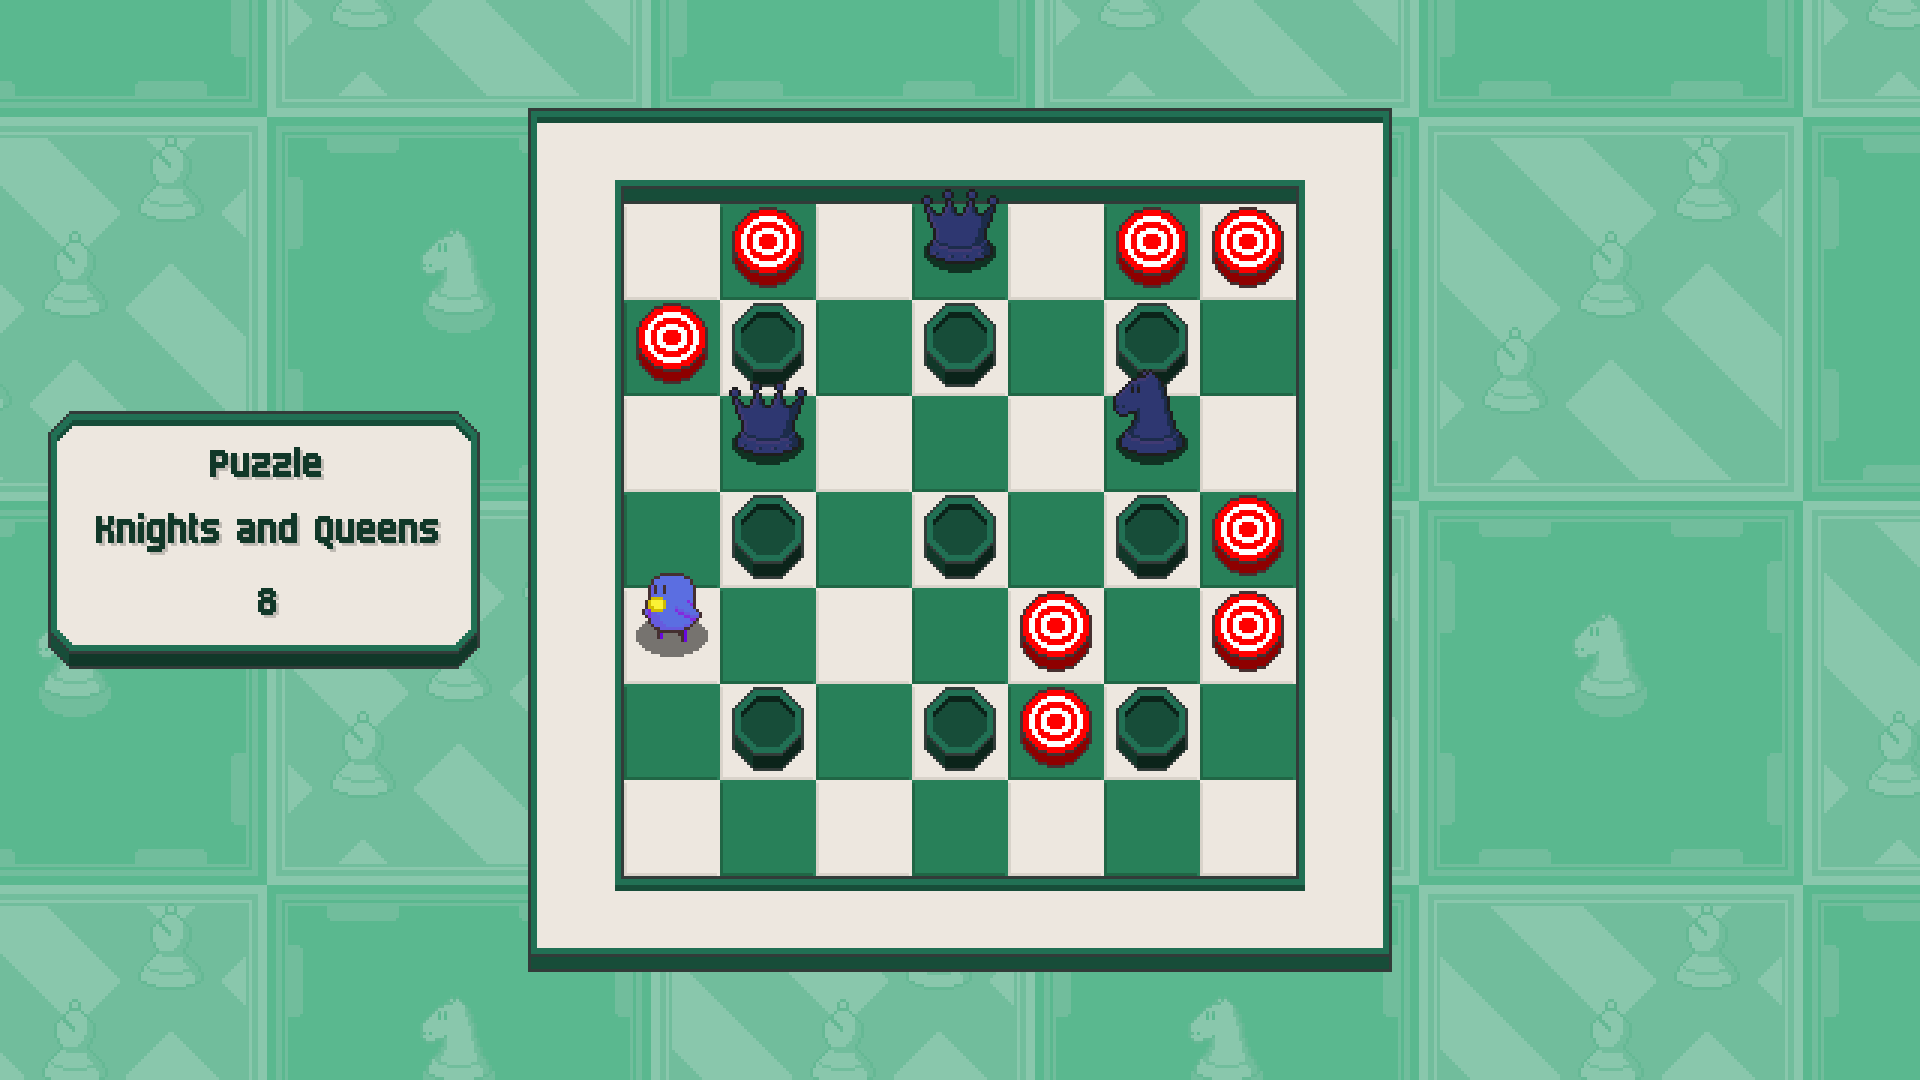 Chessplosion - Puzzle Solution Guide + Achievements Walkthrough - Grandblaster: Knights and Queens - 66A0996